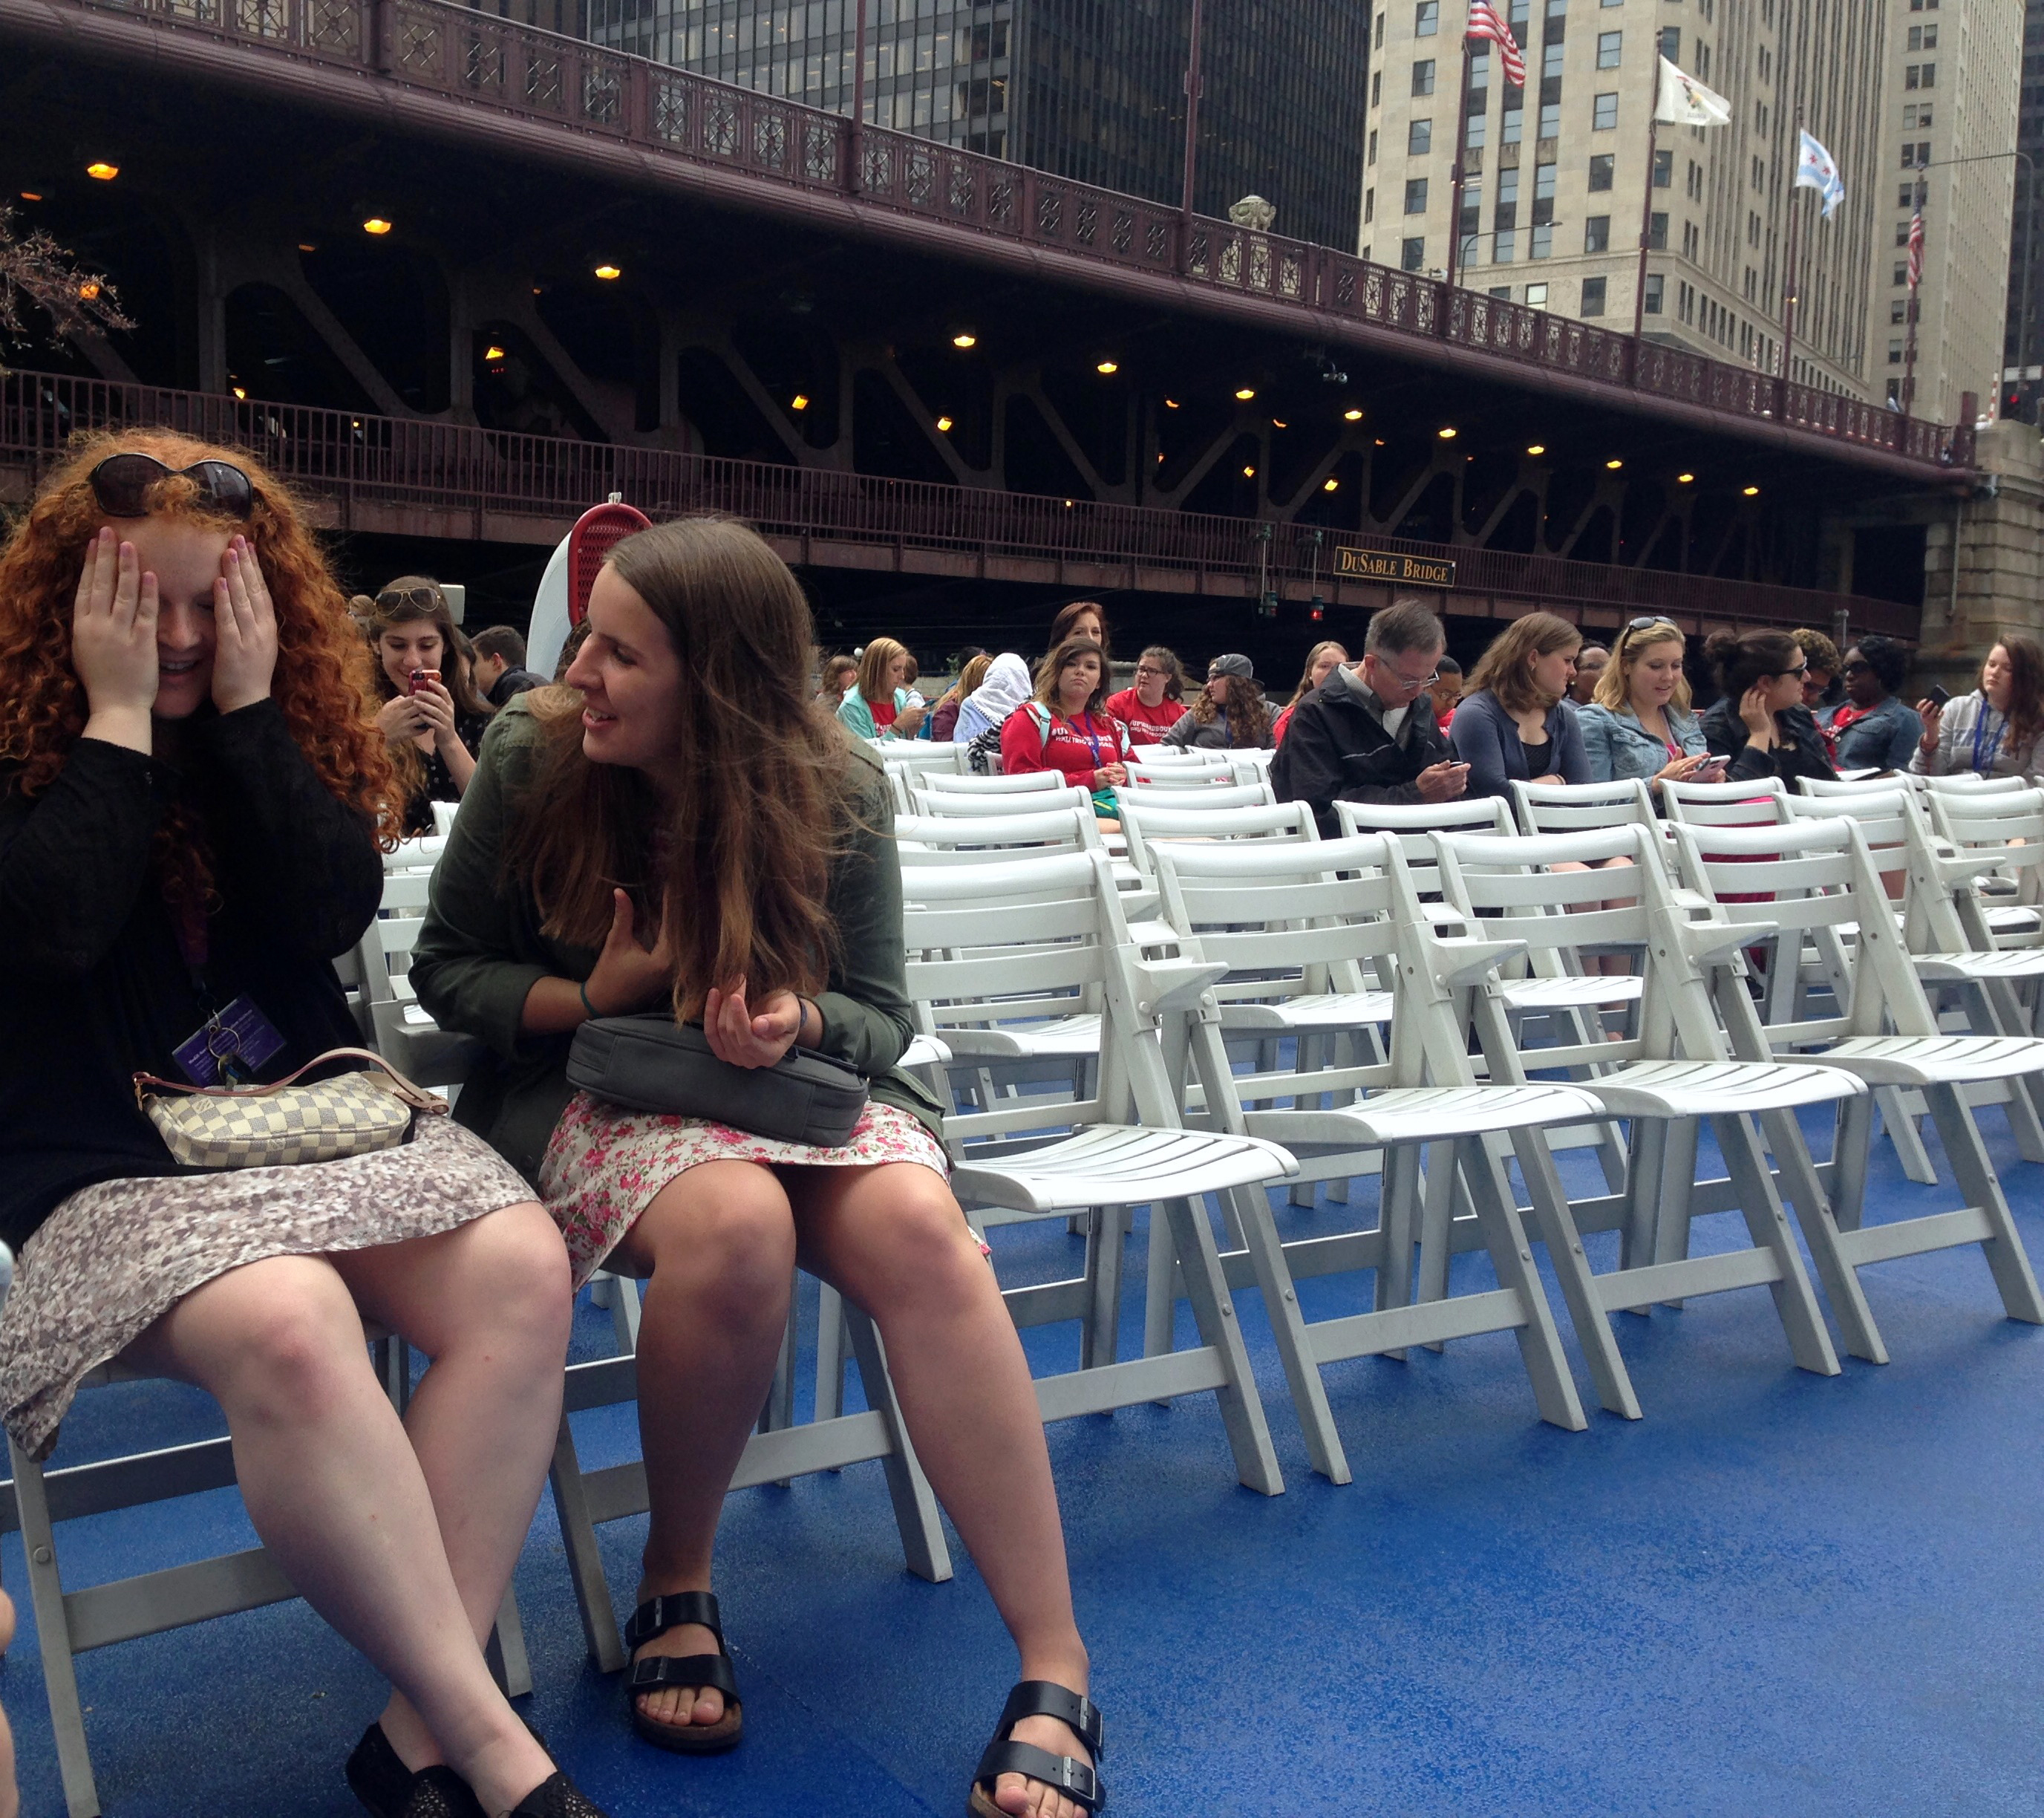 """""""It was a really good balance of getting to see the city and also getting to know each other,"""" Arden Shapiro of Michigan said of the tour. """"We were all sharing the moment, which was really nice."""" <br> Arden Shapiro (left) and Emma Swislow (right) had a lovely conversation."""